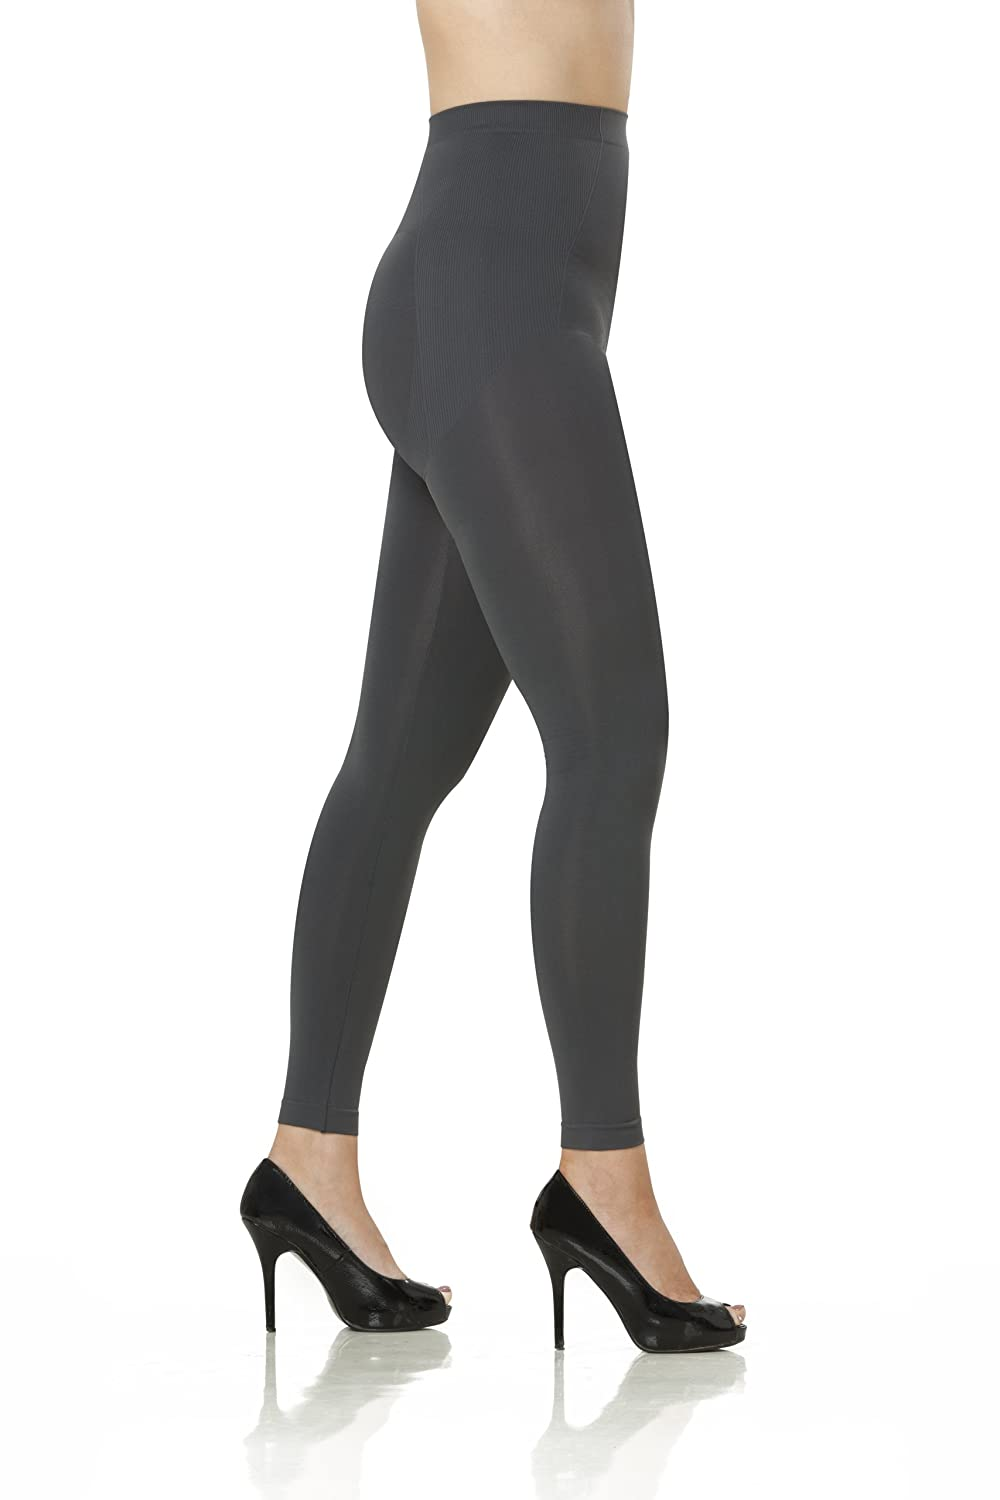 Sleex Figurformende Leggings bestellen